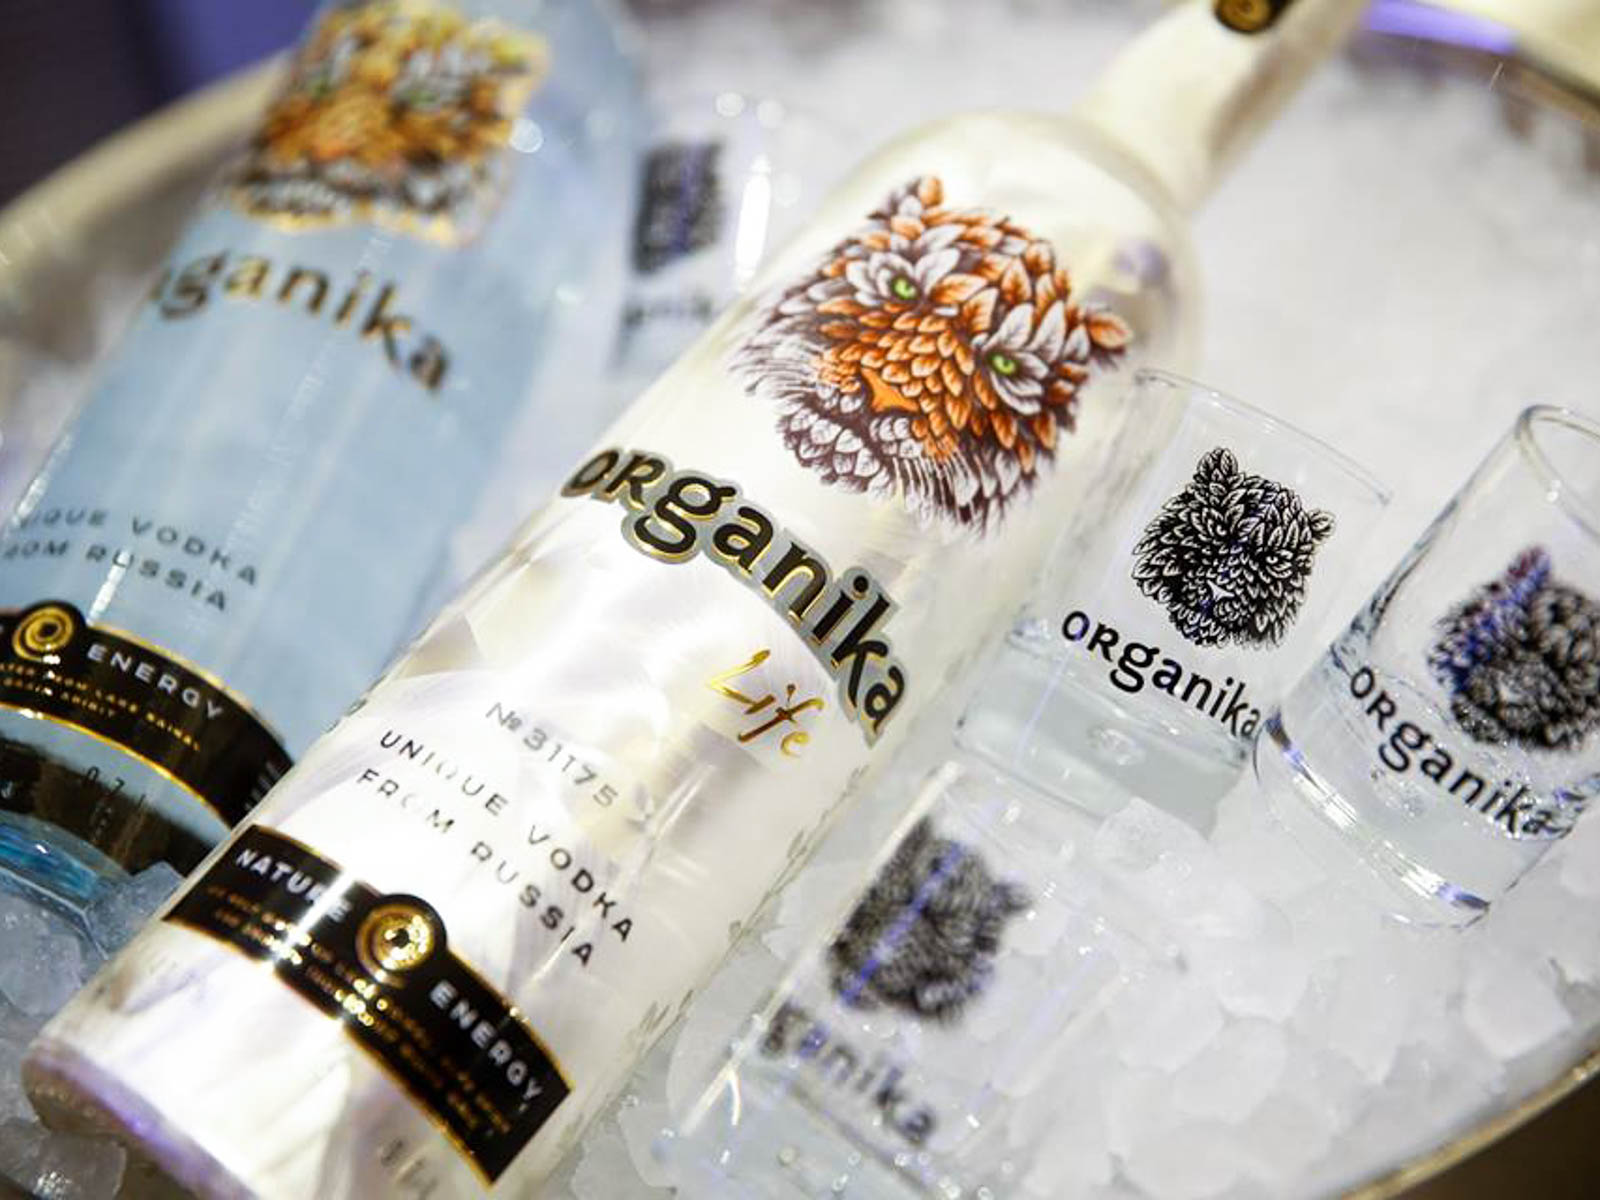 Sustainable Wines and Spirits Organika Vodka